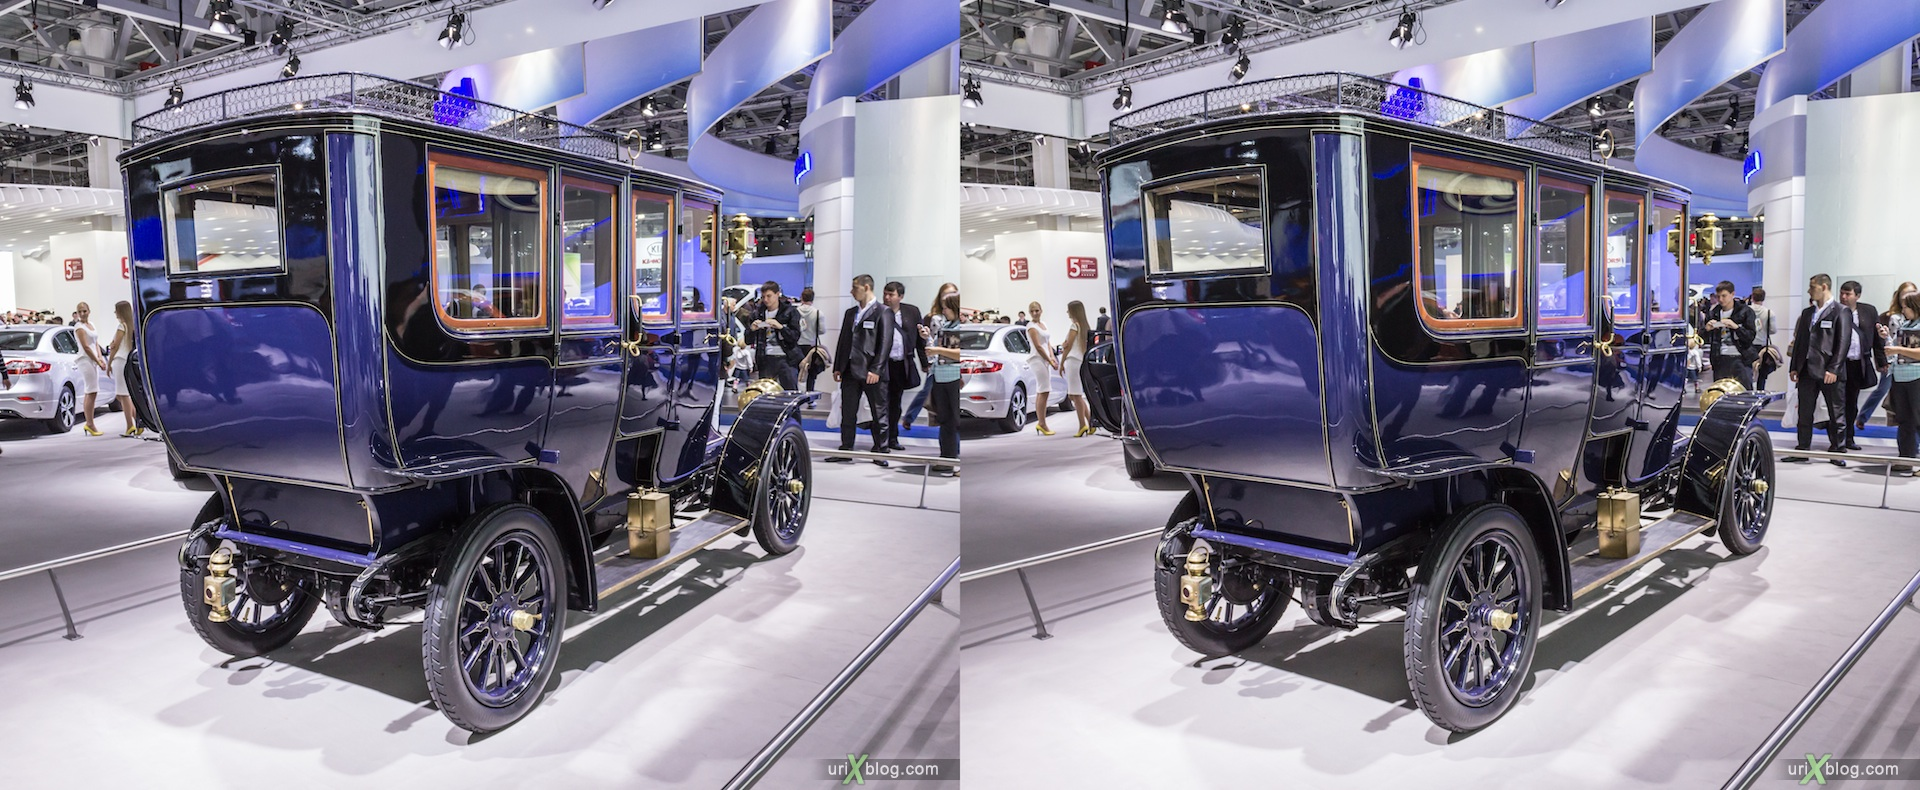 2012, Renault 1907 XB92, Moscow International Automobile Salon, auto show, 3D, stereo pair, cross-eyed, crossview